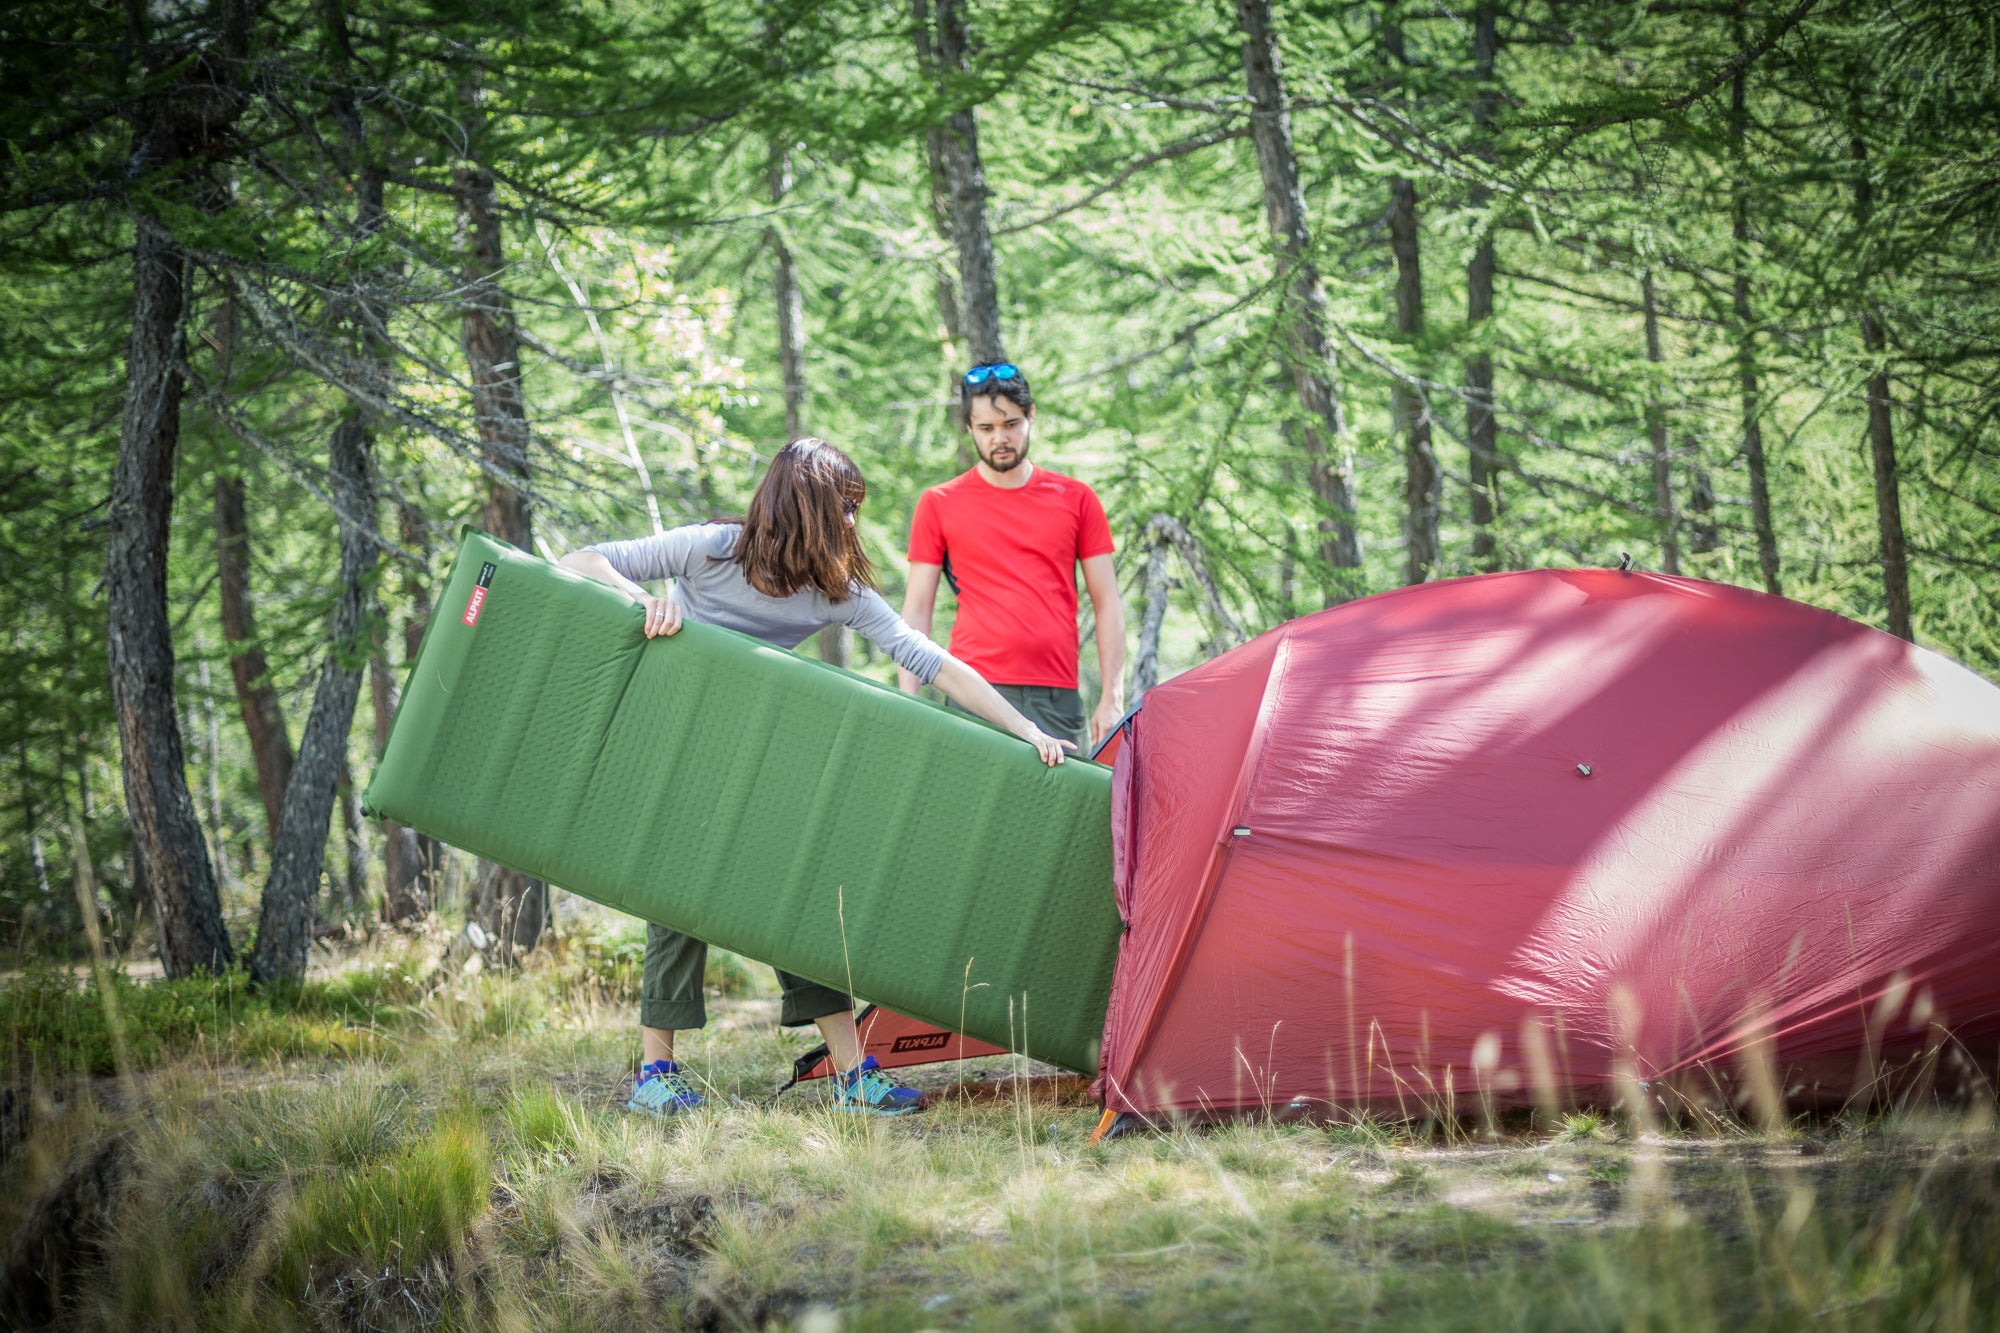 Putting a Dozer camping mat into a tent in a wooded area in Chamonix